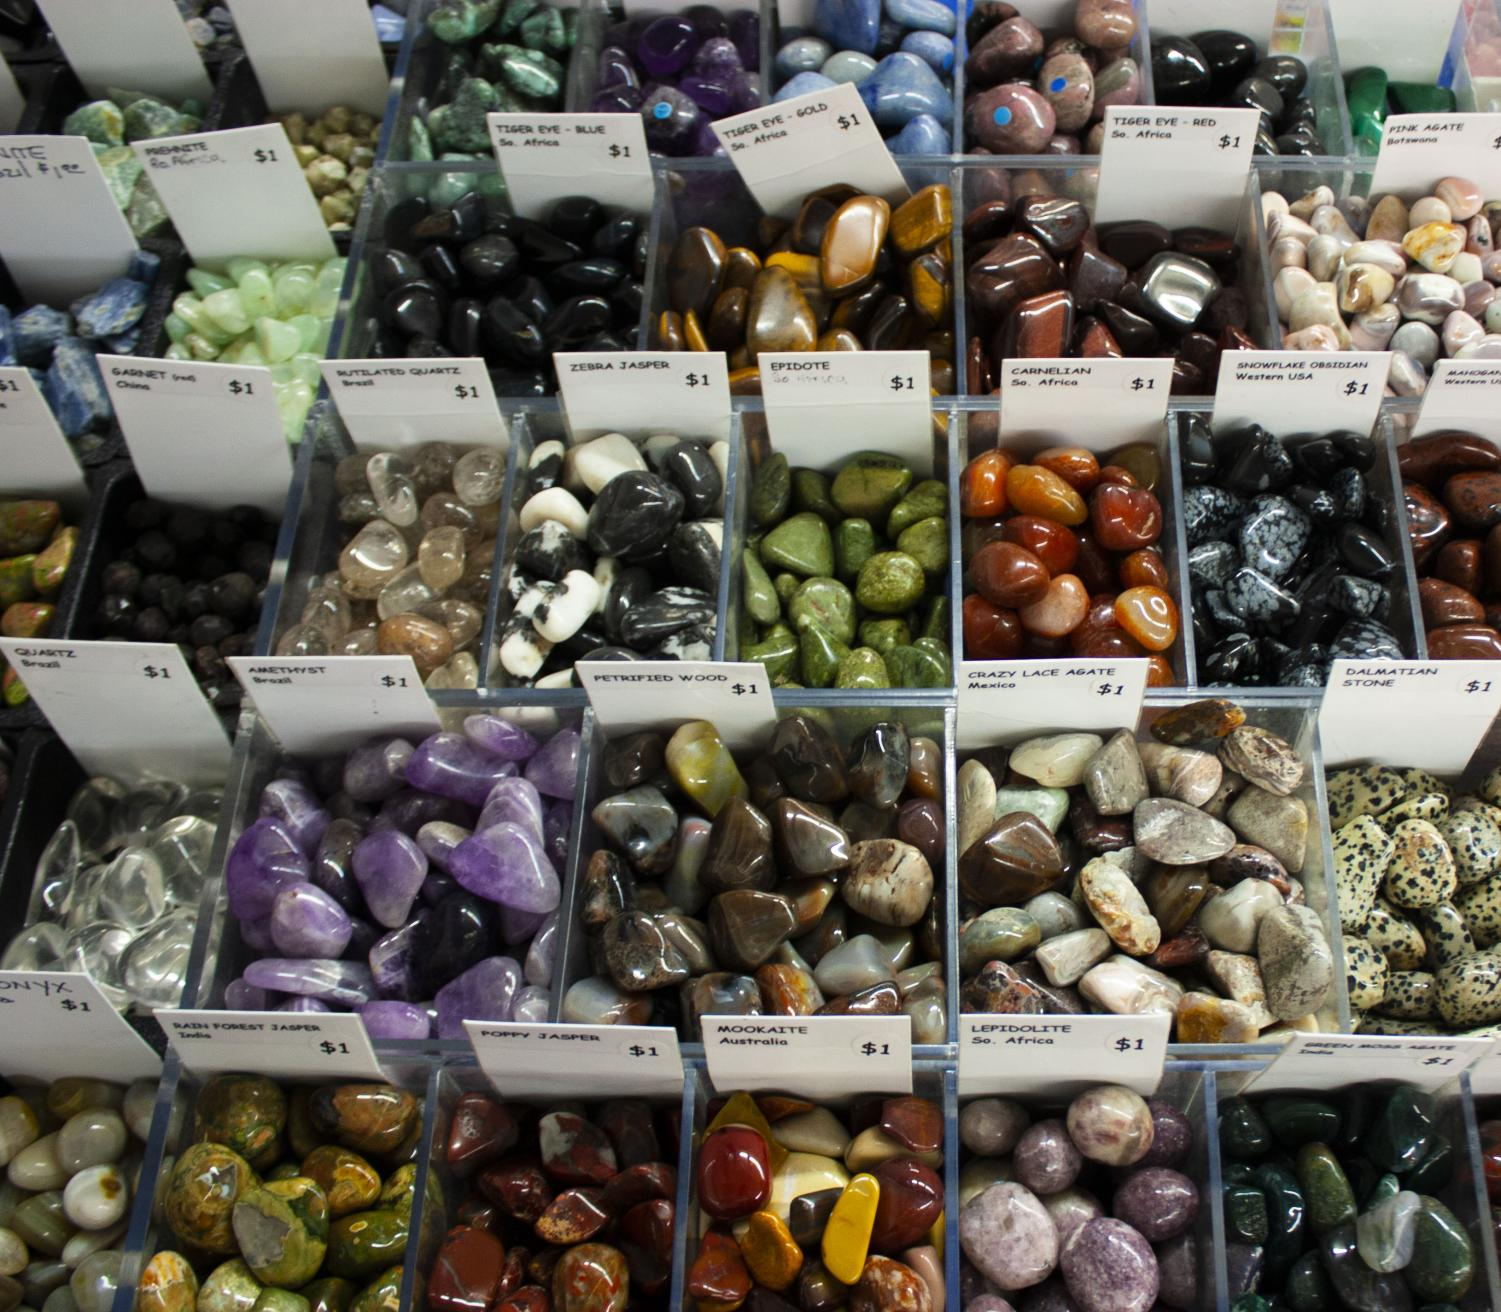 Individual+stones+were+being+sold++at+the+56th+Annual+Chippewa+Valley+Gem+and+Mineral+Society+show+and+sale.+